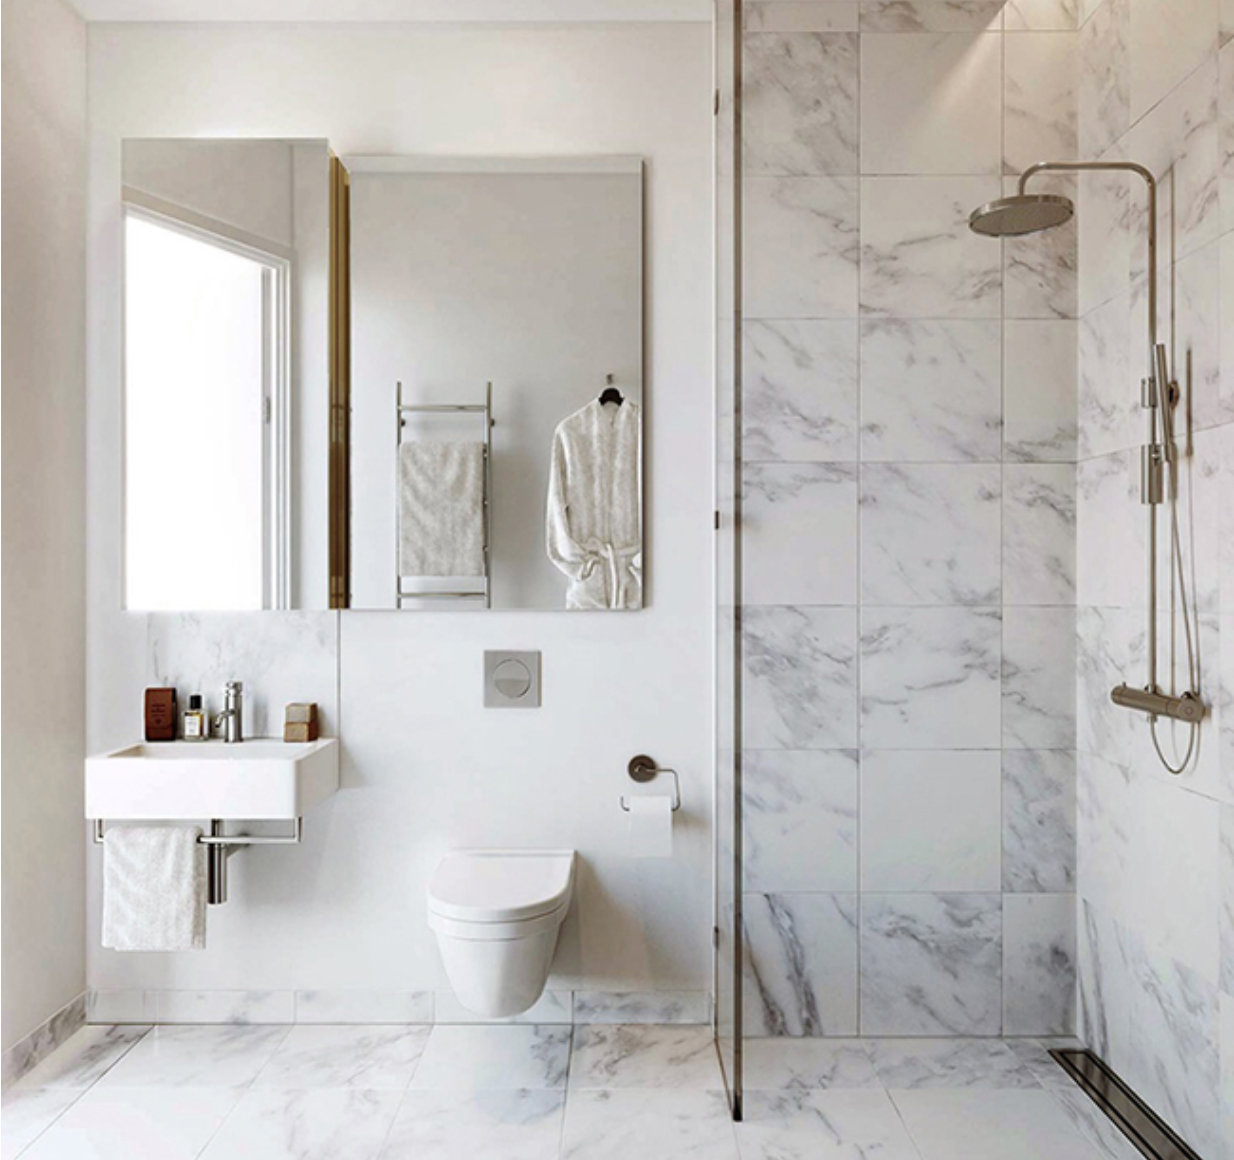 White and grey wet room with marble tiled shower stall and floor, rain head shower, wall hung toilet and sink unit